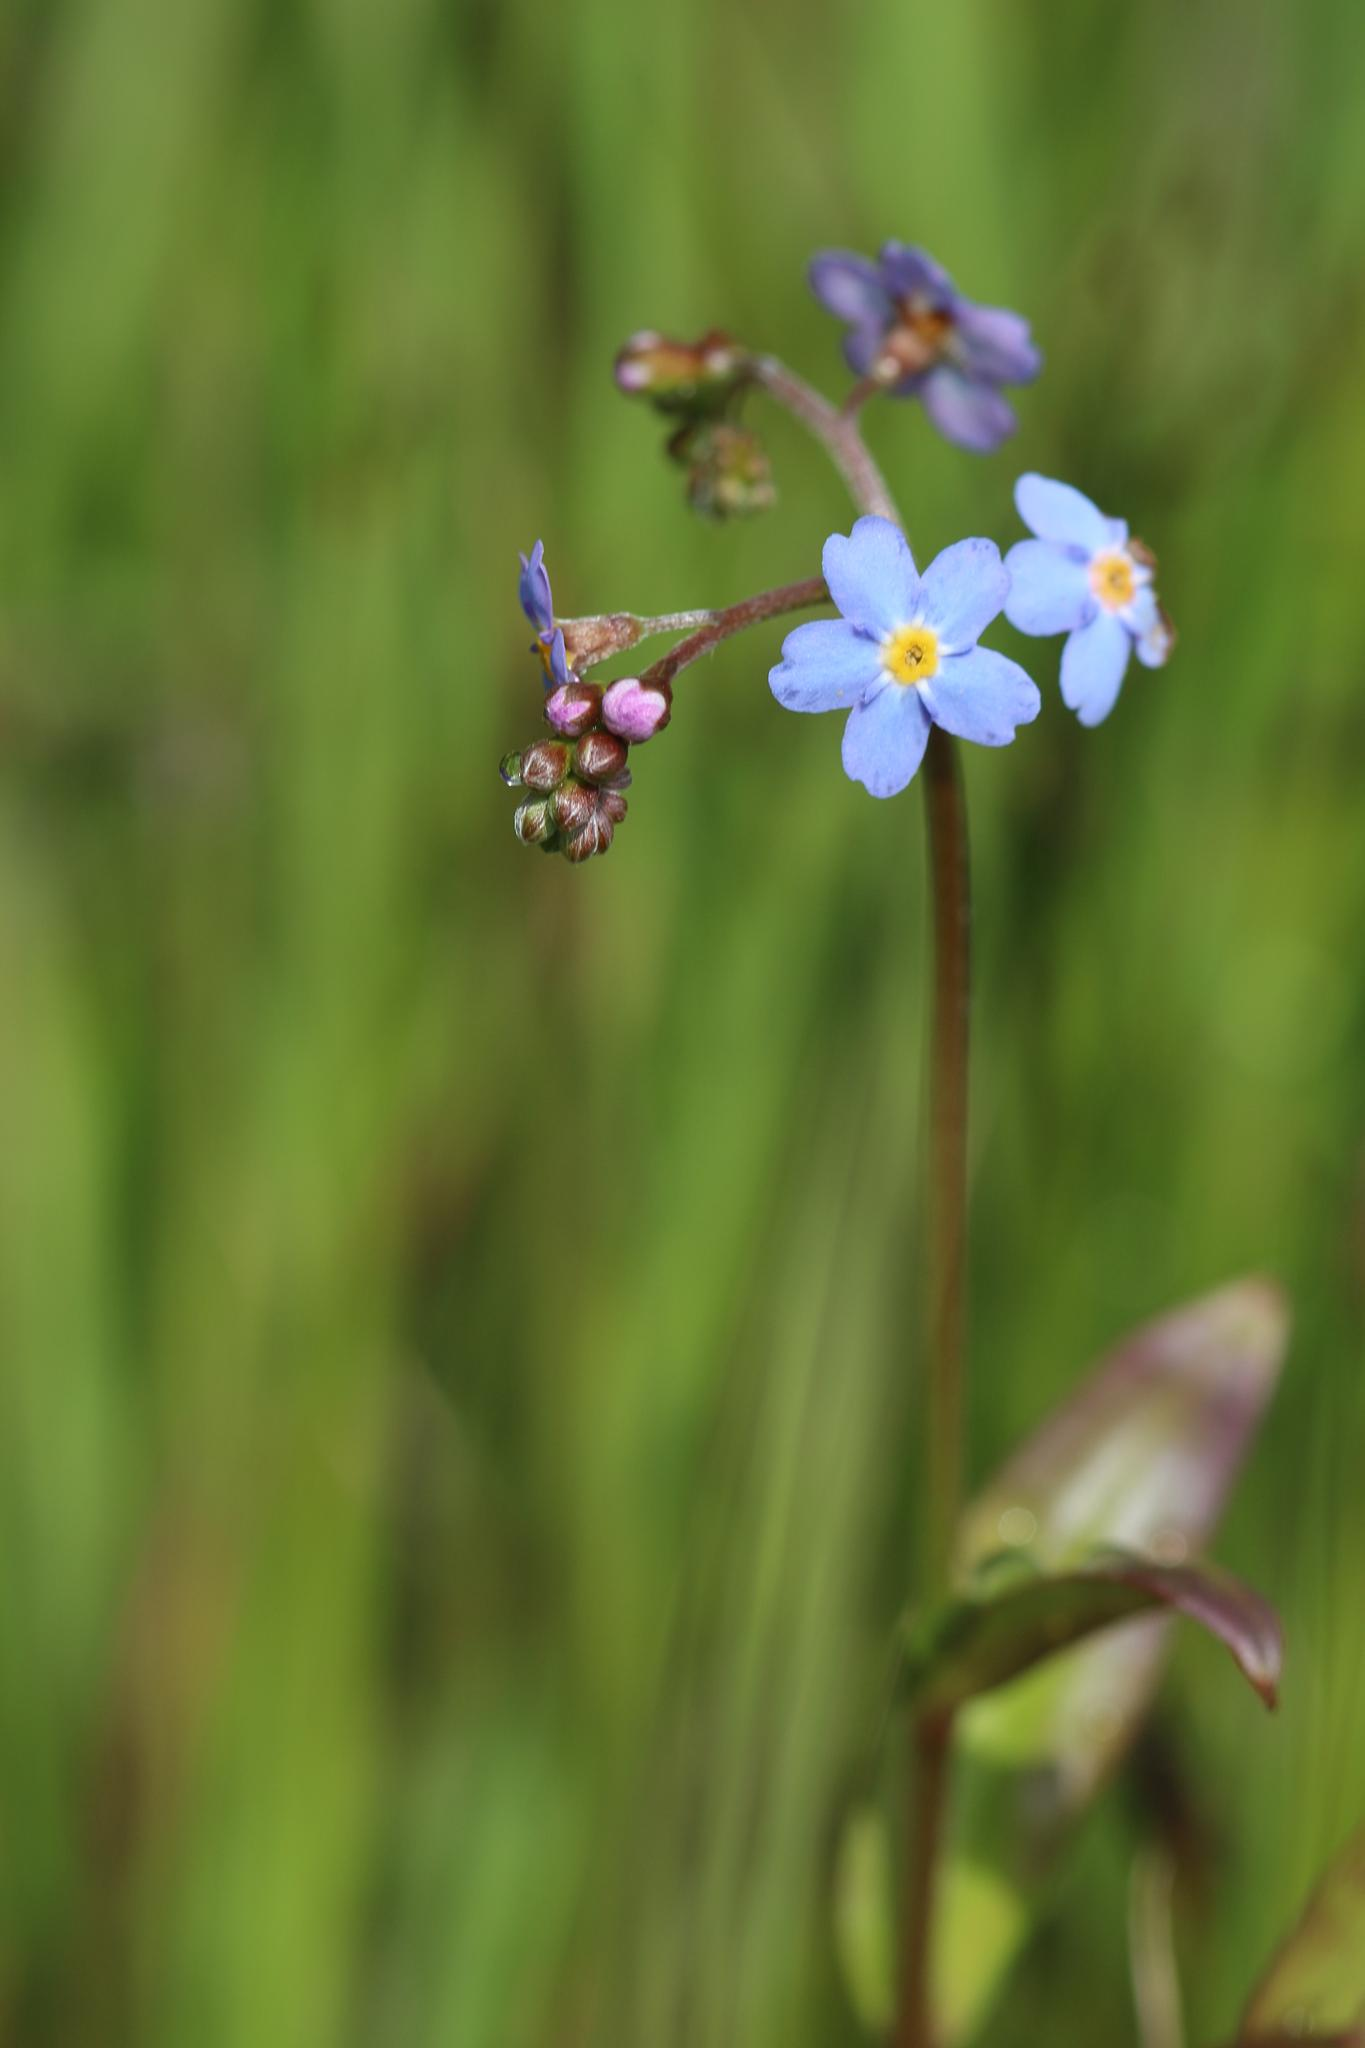 Forget-me-not by alf lundsten